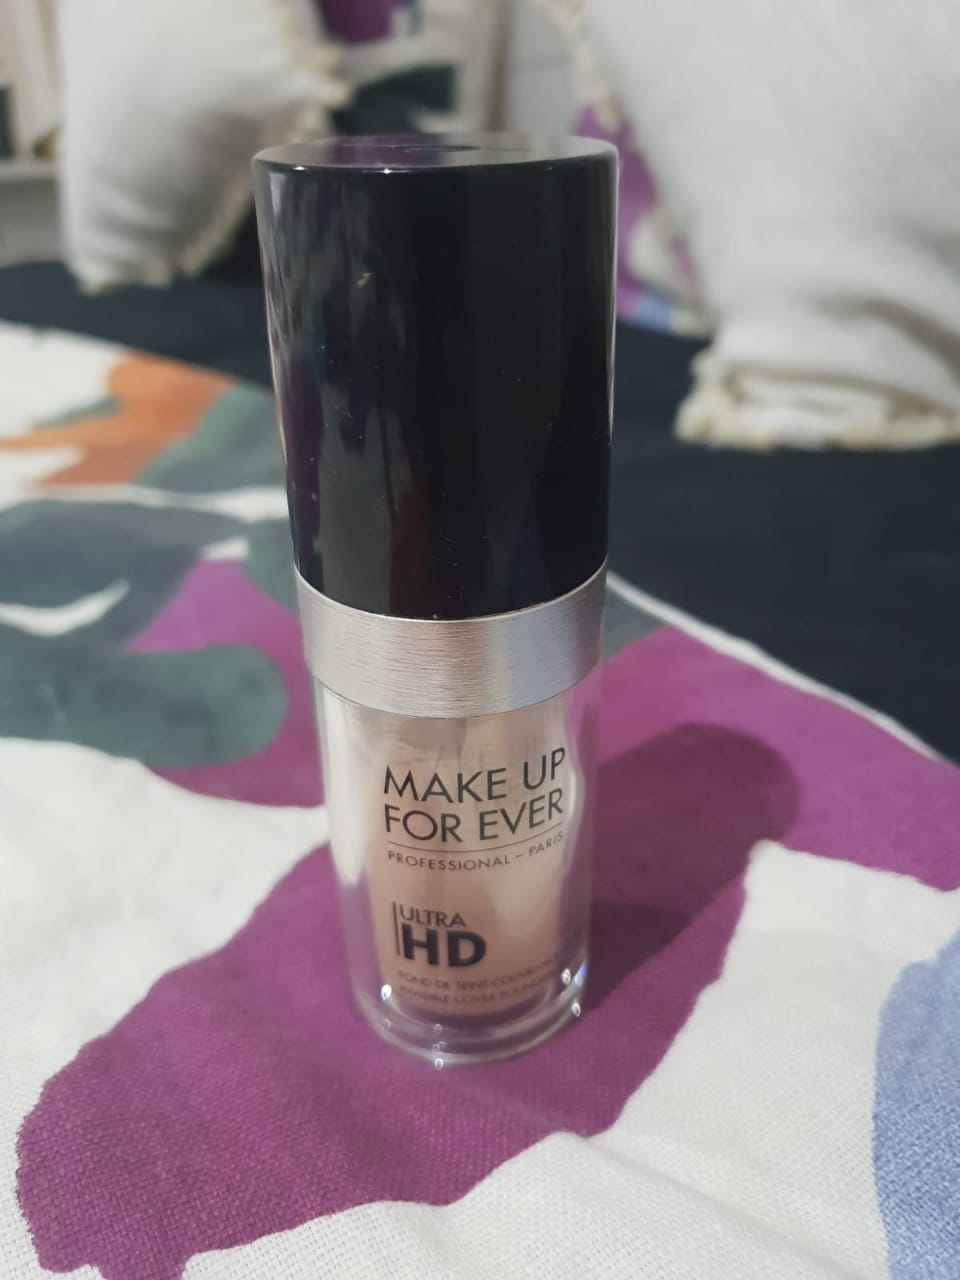 MAKE UP FOR EVER Ultra HD Invisible Cover Foundation -Awesome foundation-By poonam_kakkar